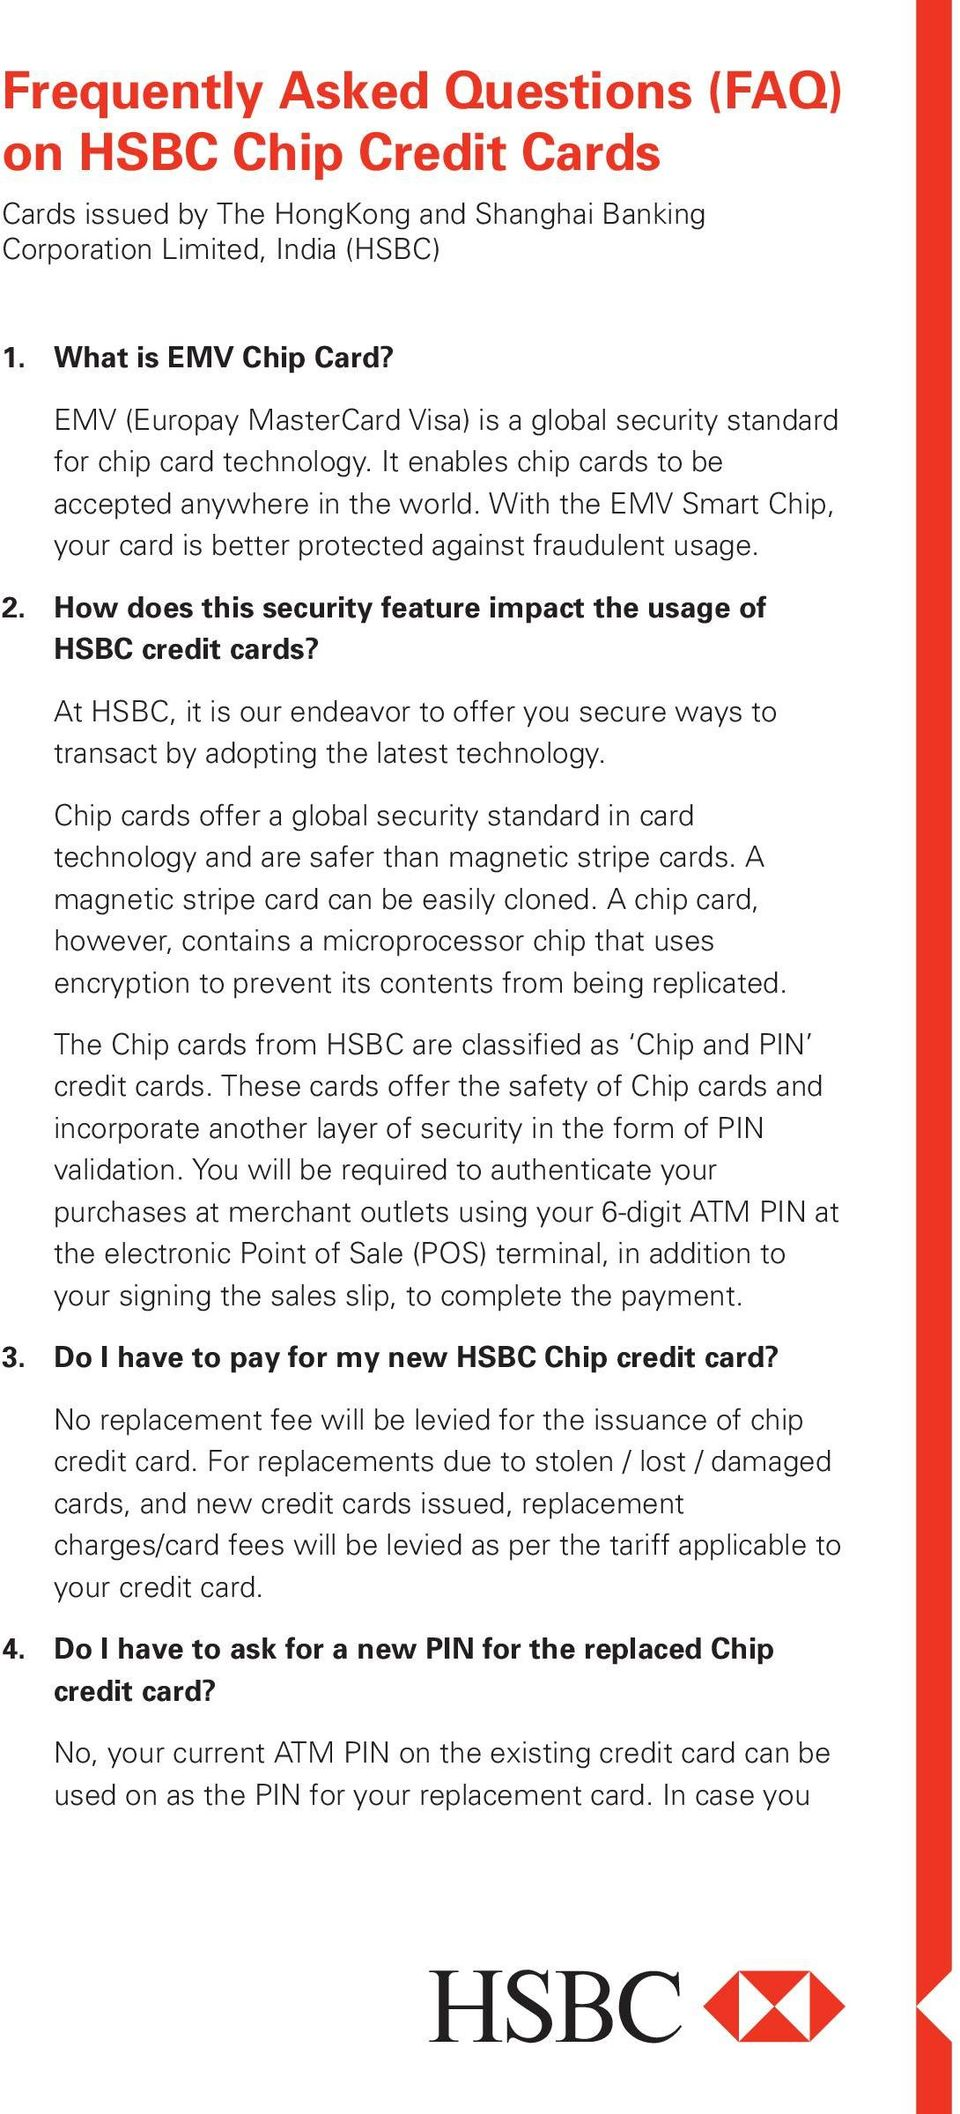 With the EMV Smart Chip, your card is better protected against fraudulent usage. 2. How does this security feature impact the usage of HSBC credit cards?